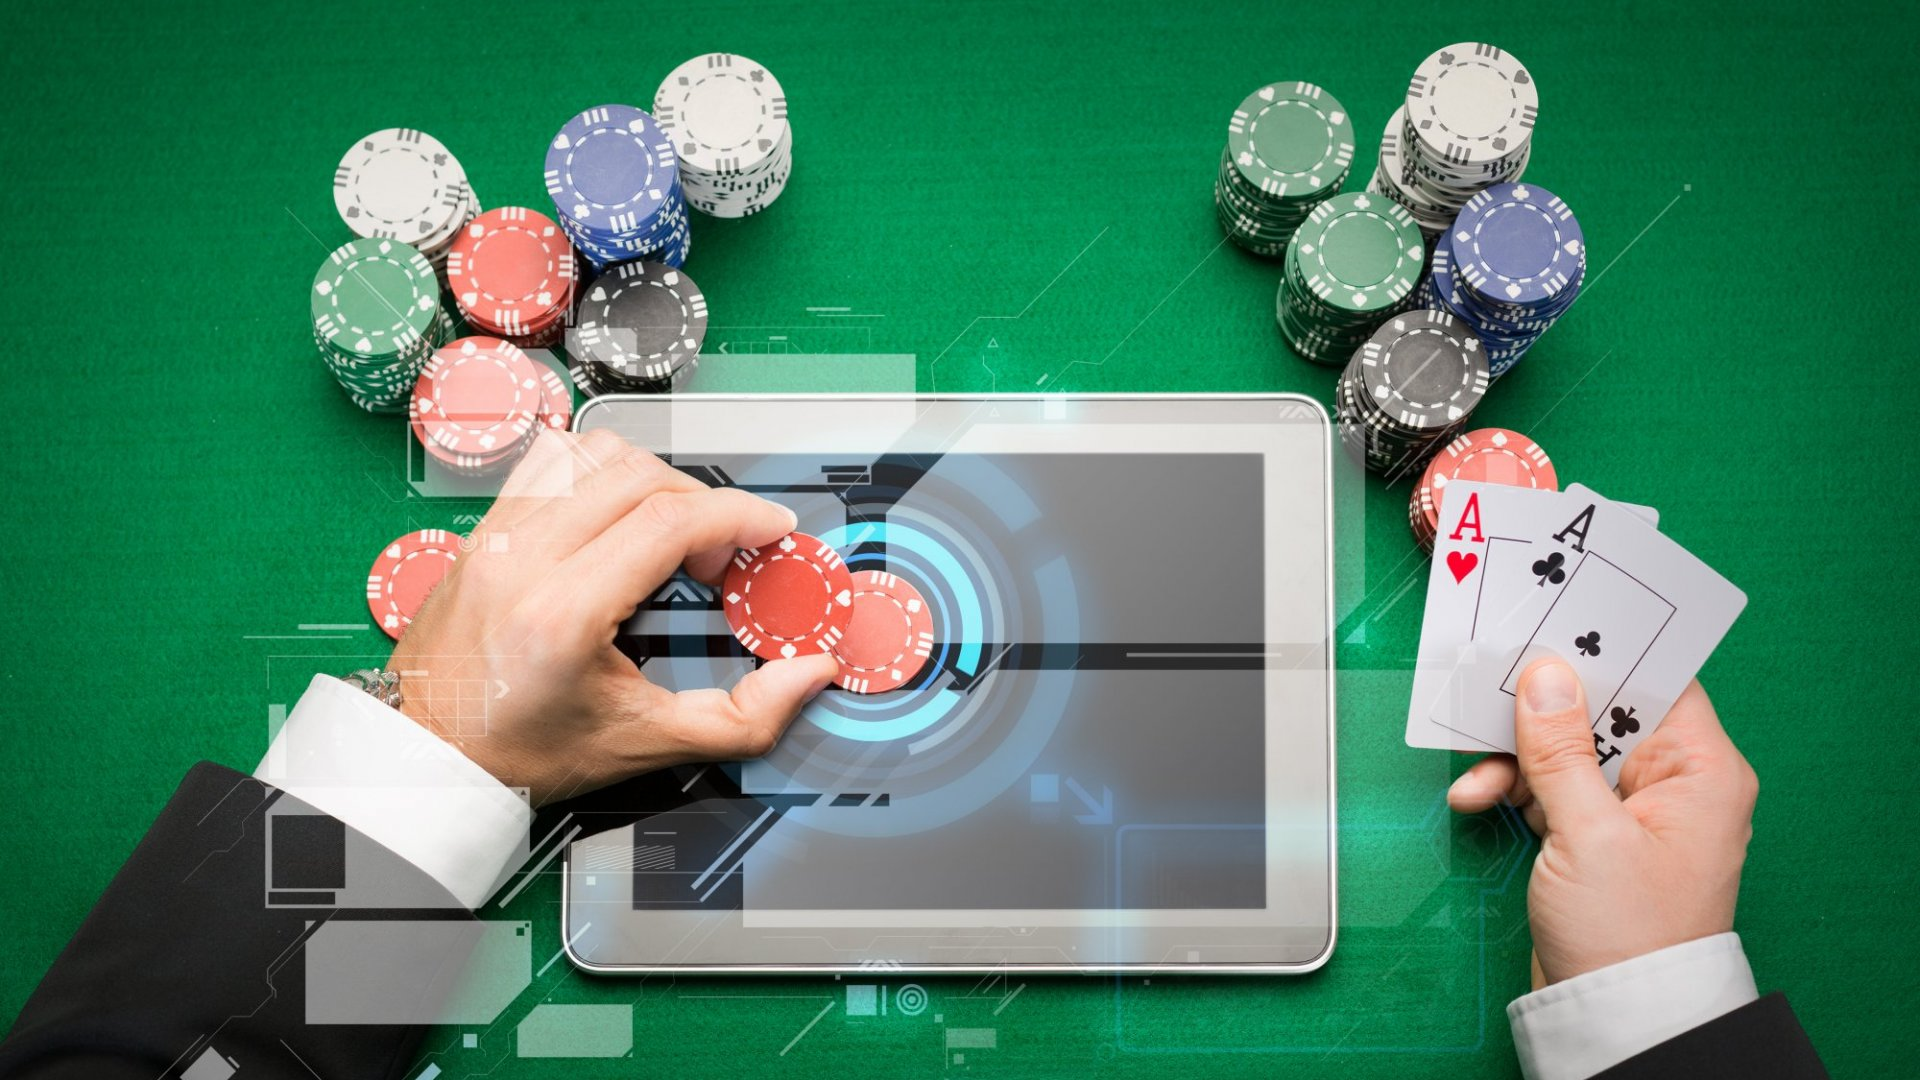 Rules About Gambling Online Meant To Be Broken